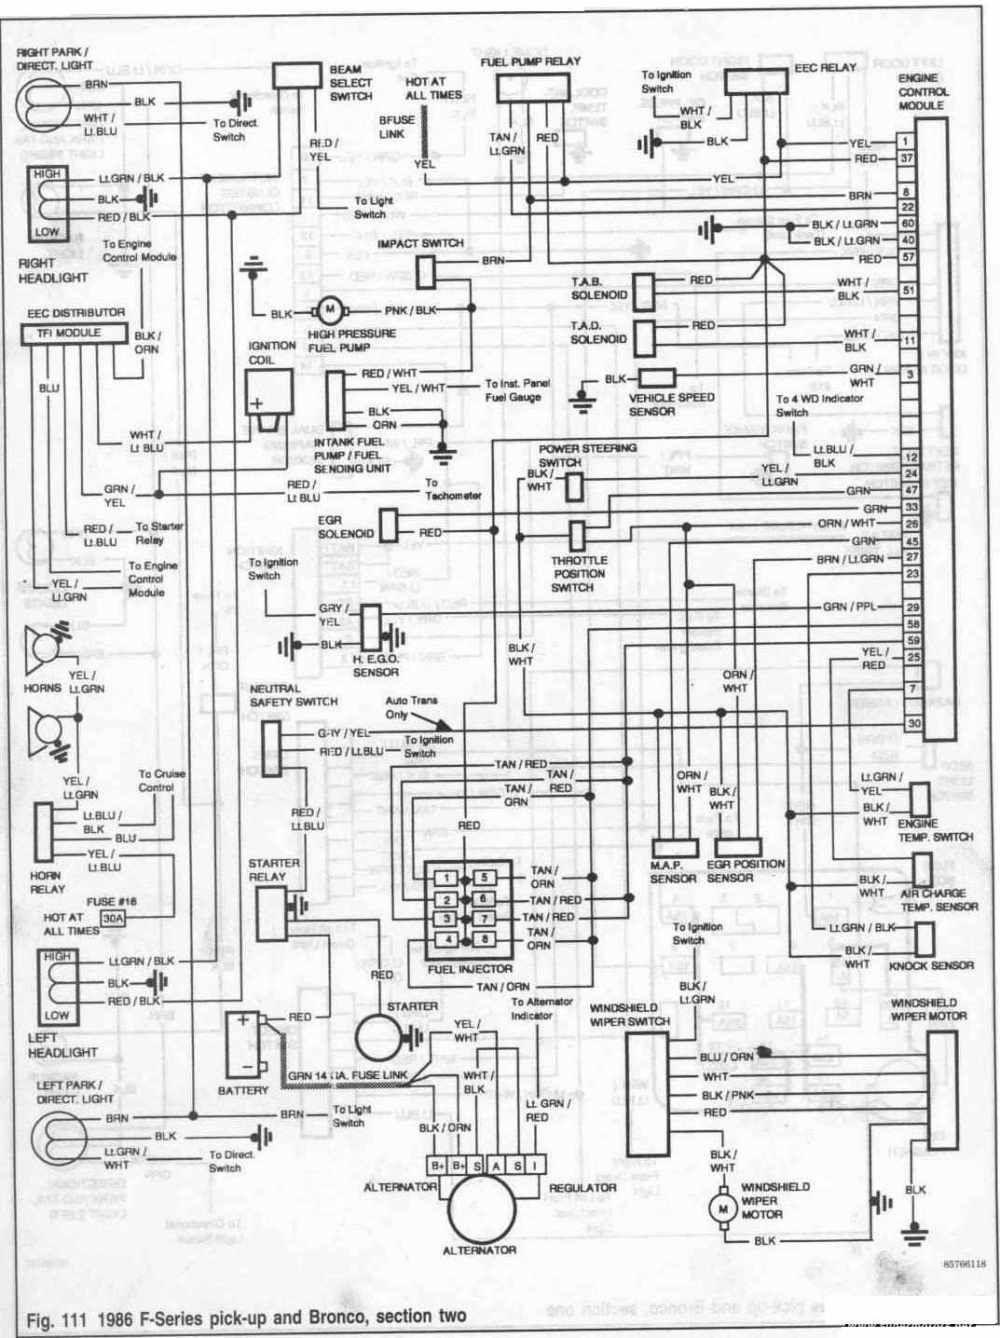 medium resolution of 1986 ford f150 wiring diagram wiring diagram todays 2003 ford f350 wiring diagram 1986 f350 wiring diagram